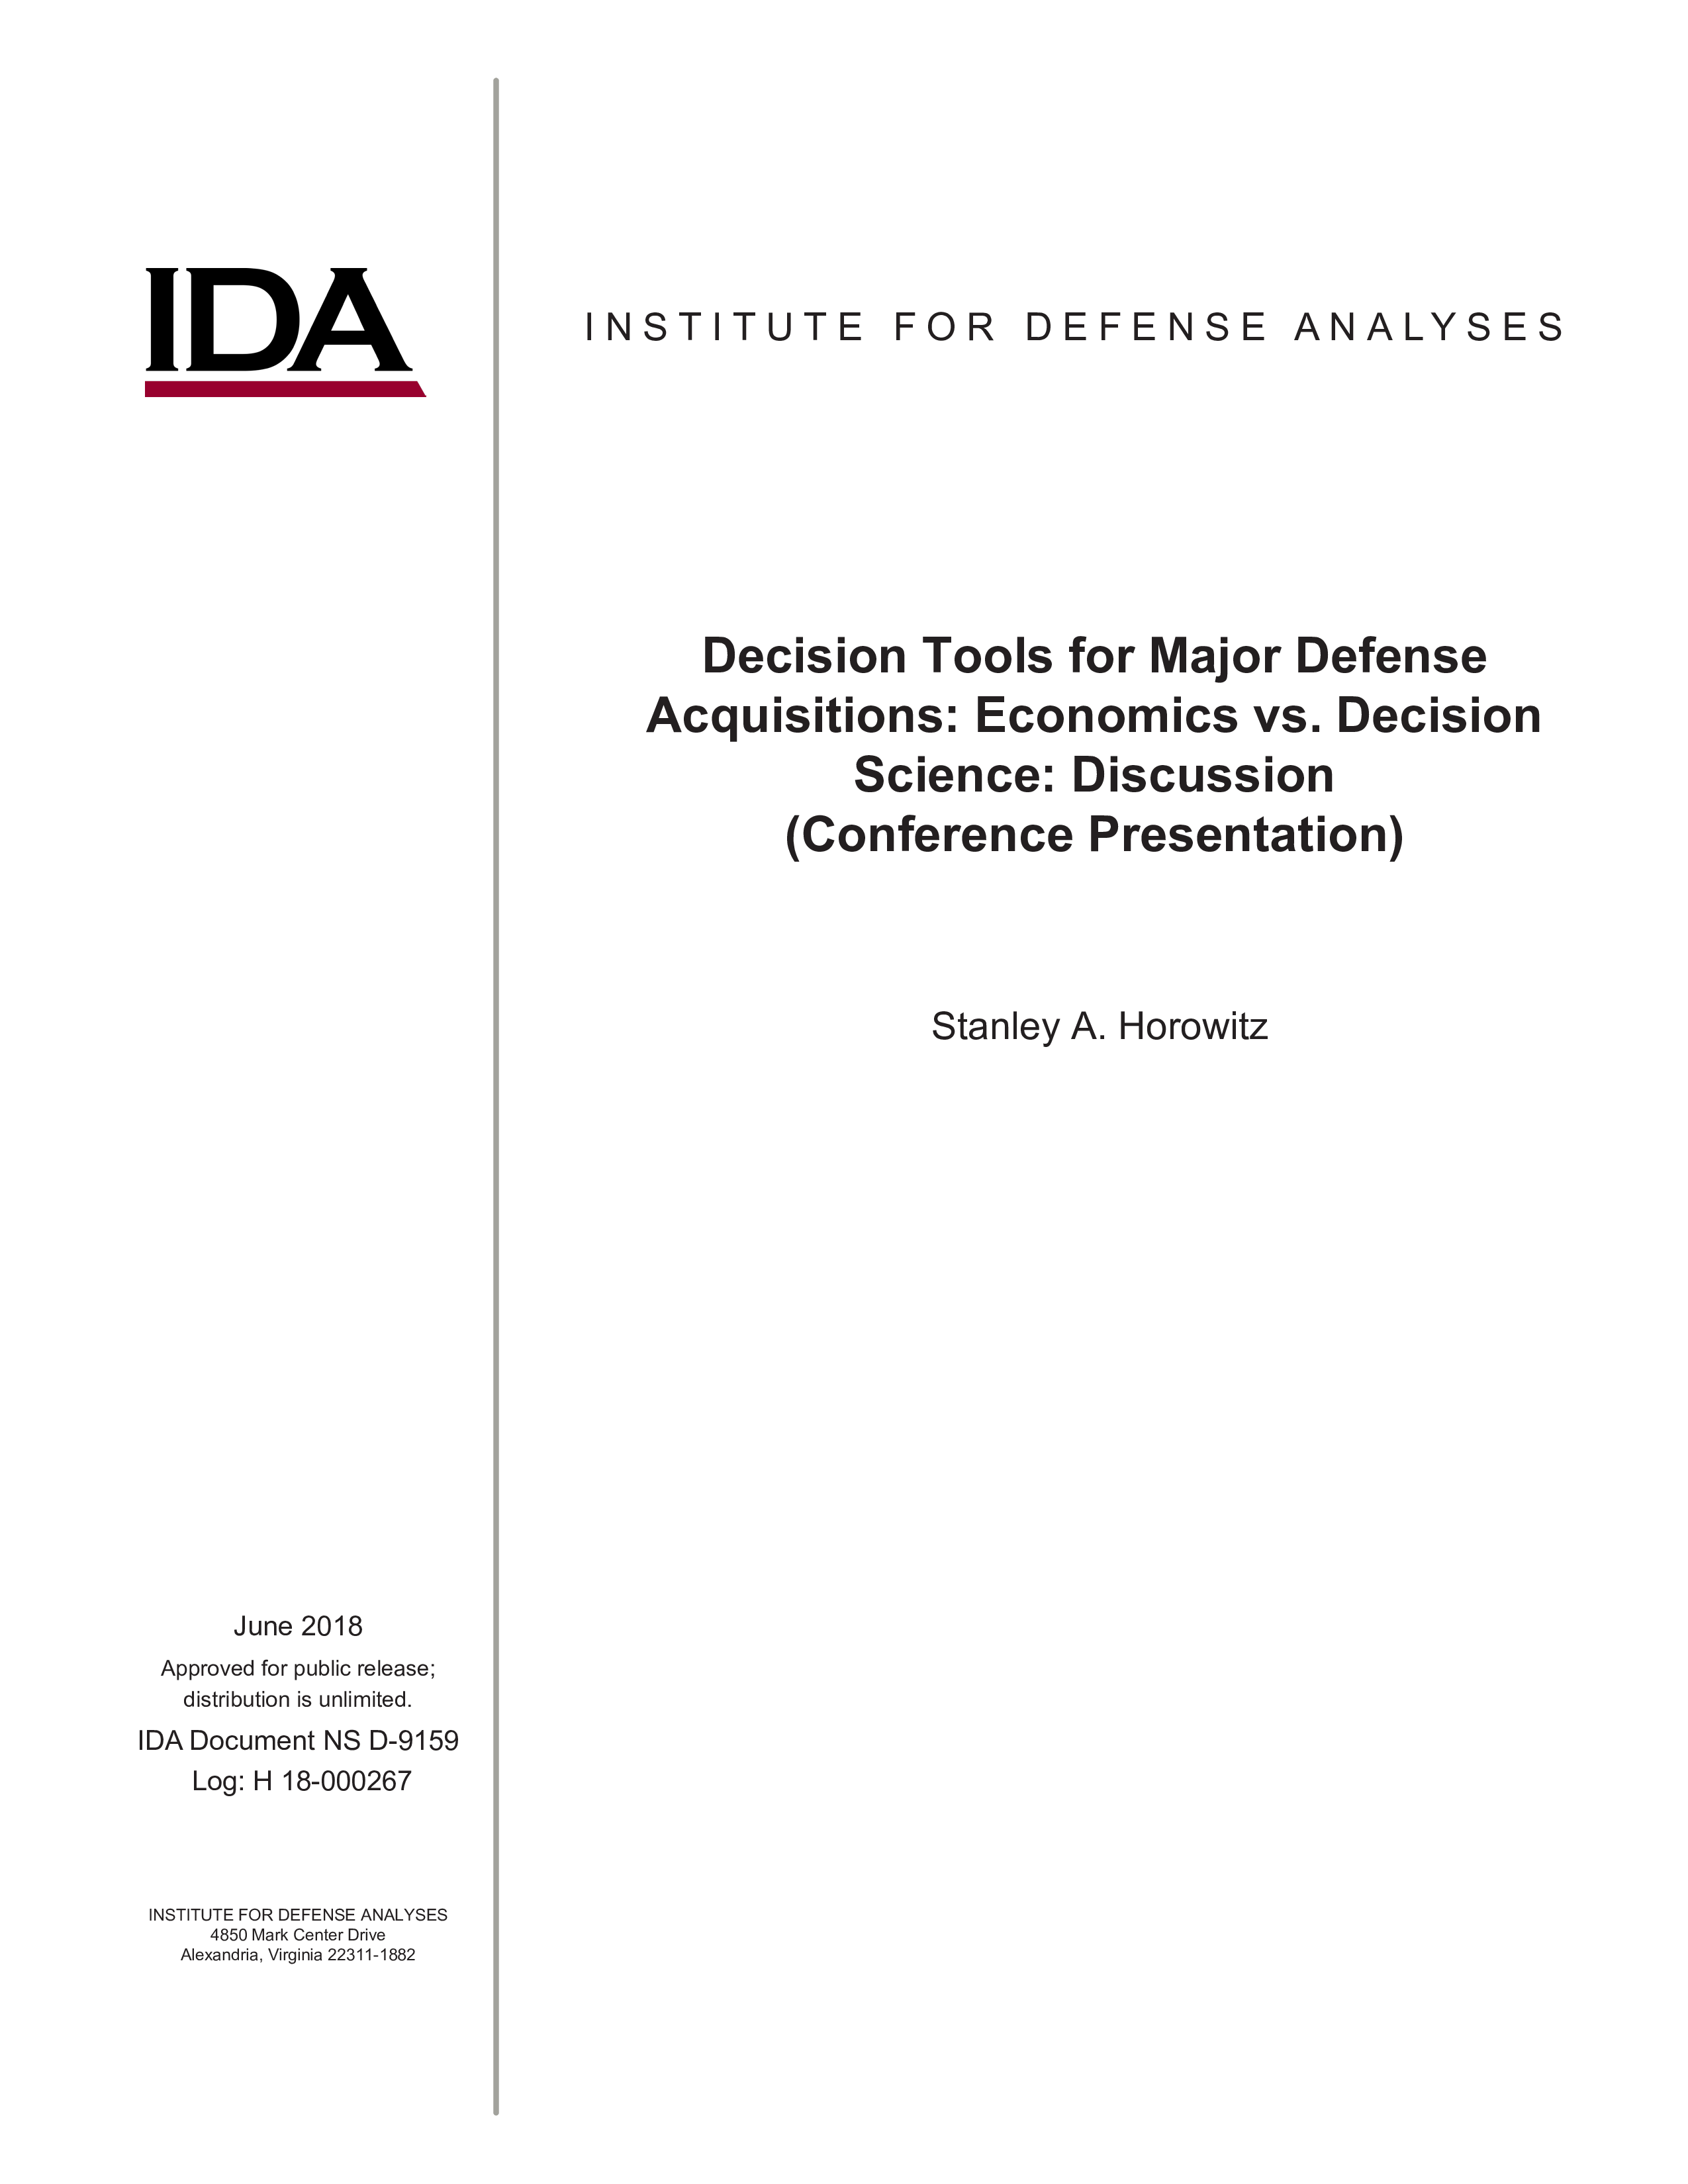 Decision Tools for Major Defense Acquisitions: Economics vs. Decision Science: Discussion (Conference Presentation)